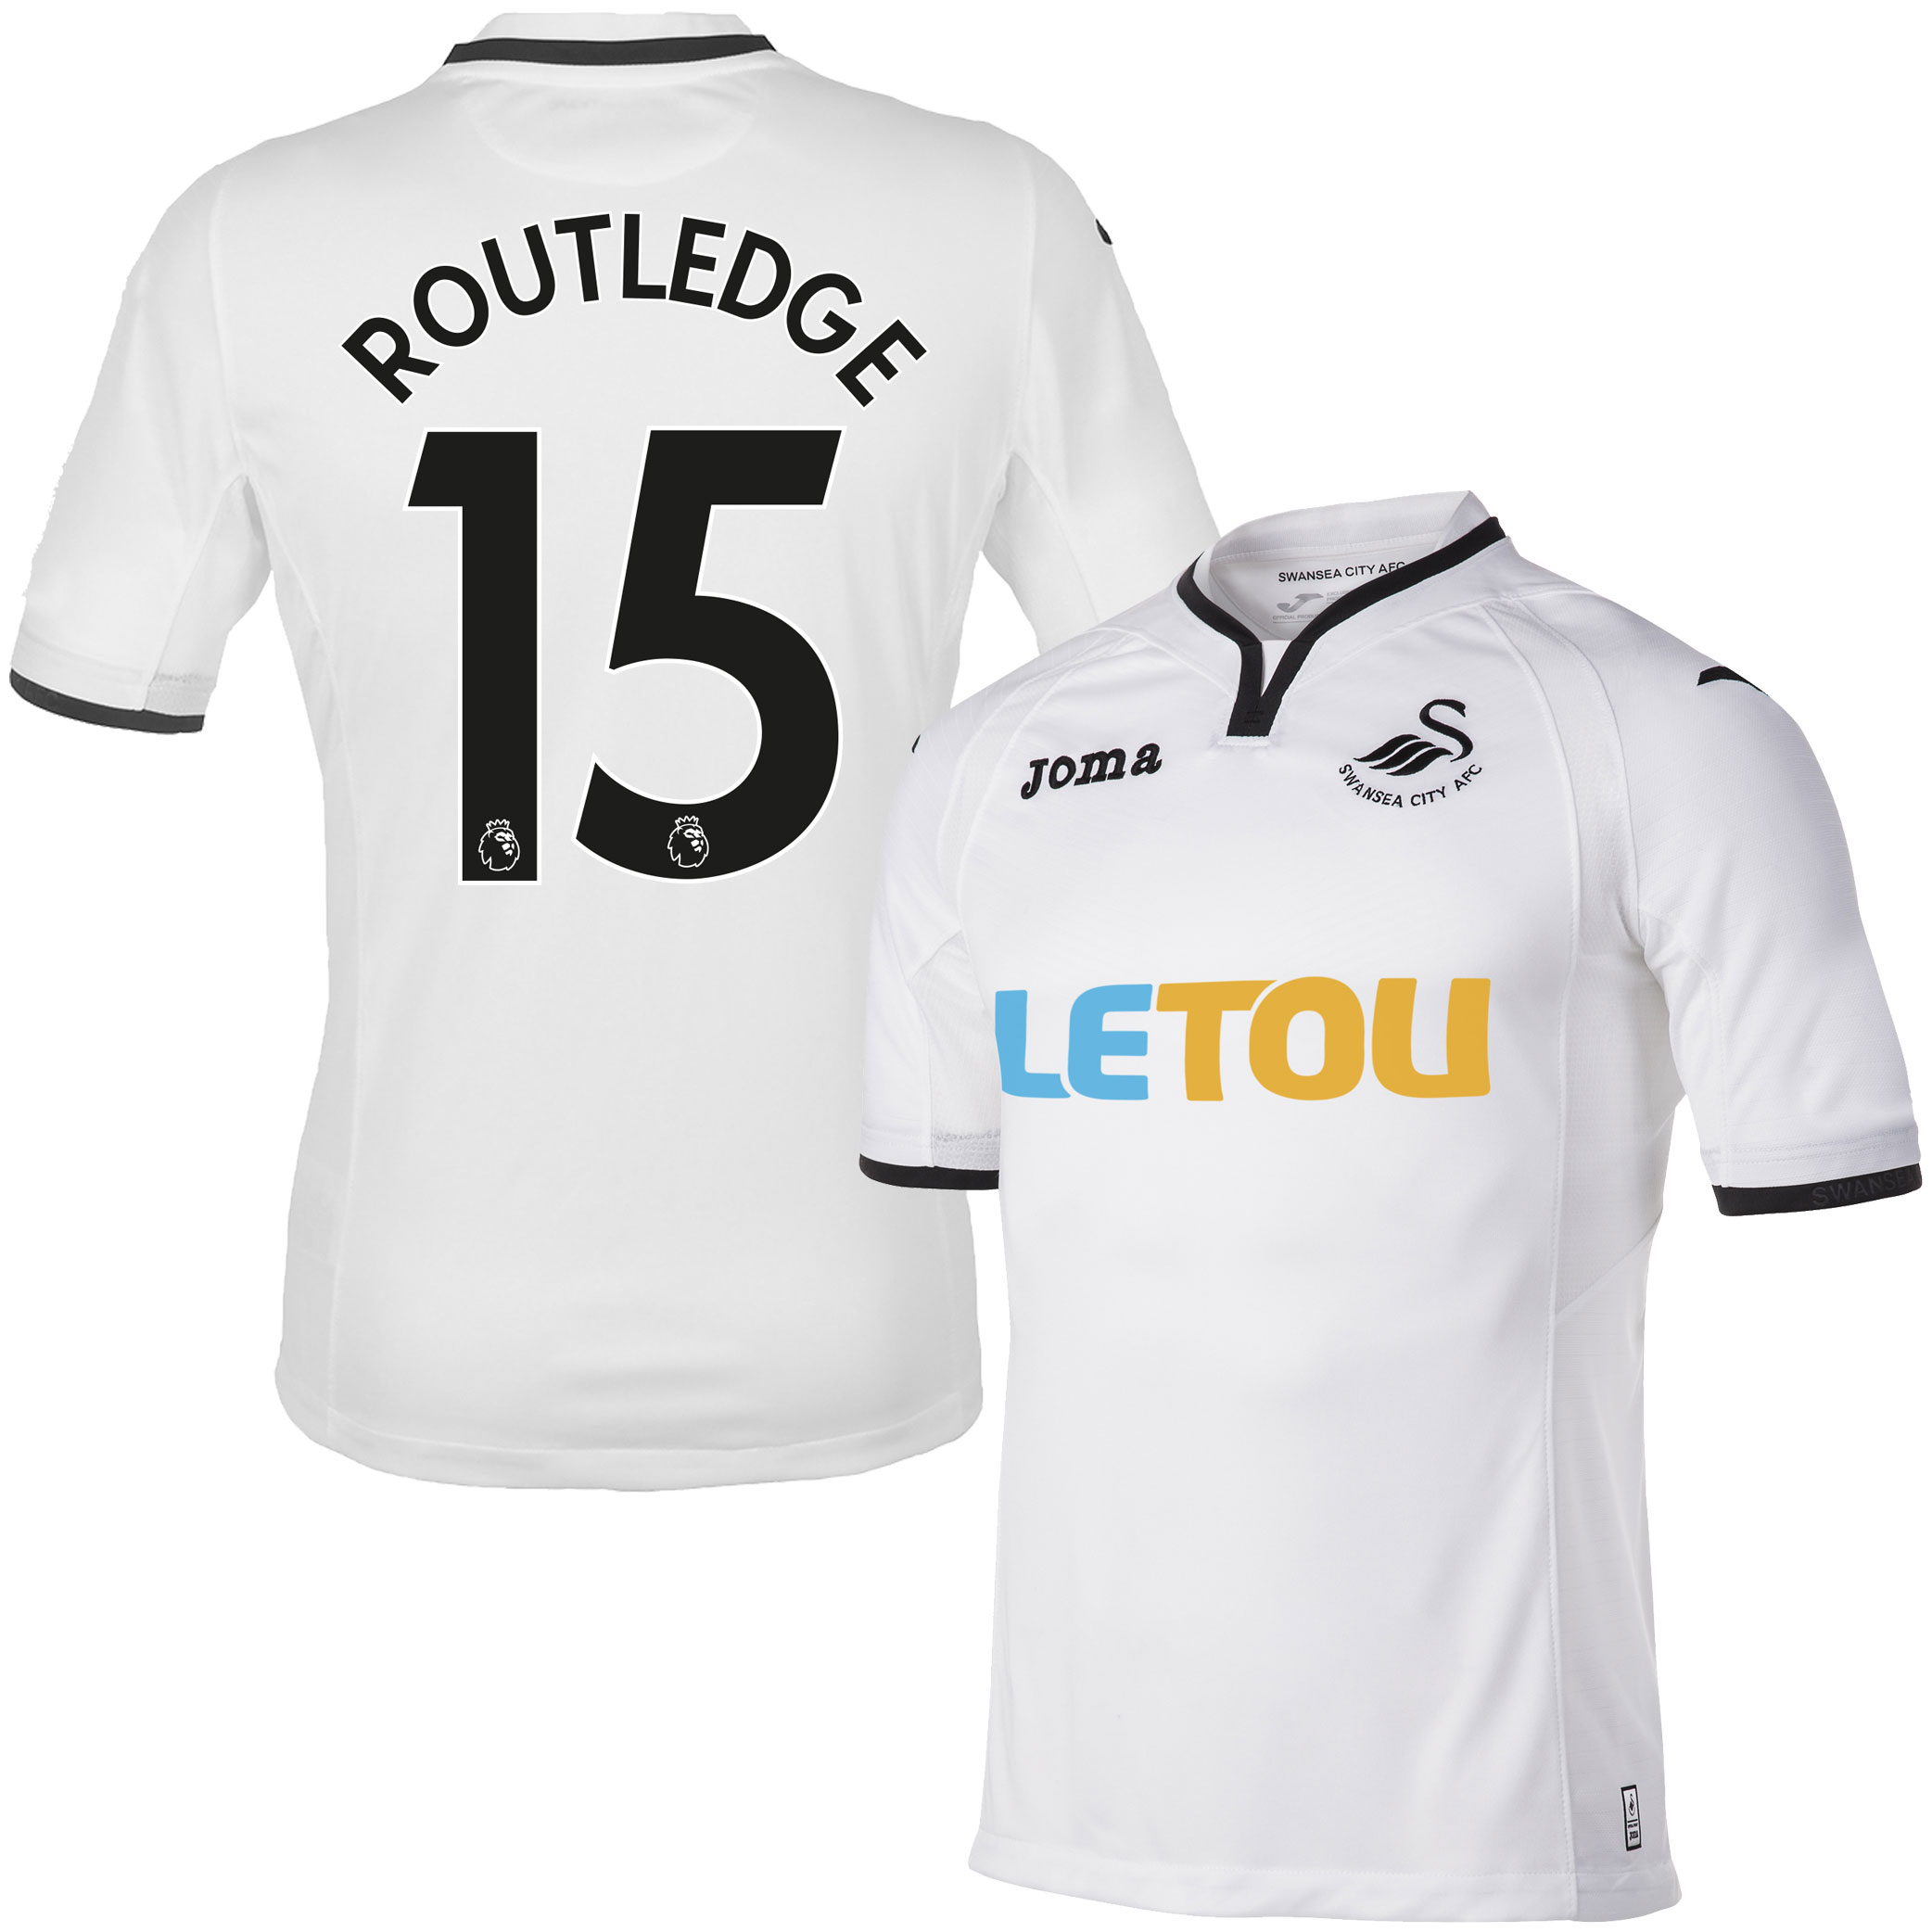 Swansea City Home Routledge Jersey 2017 / 2018 (Authentic EPL Printing) - XXL